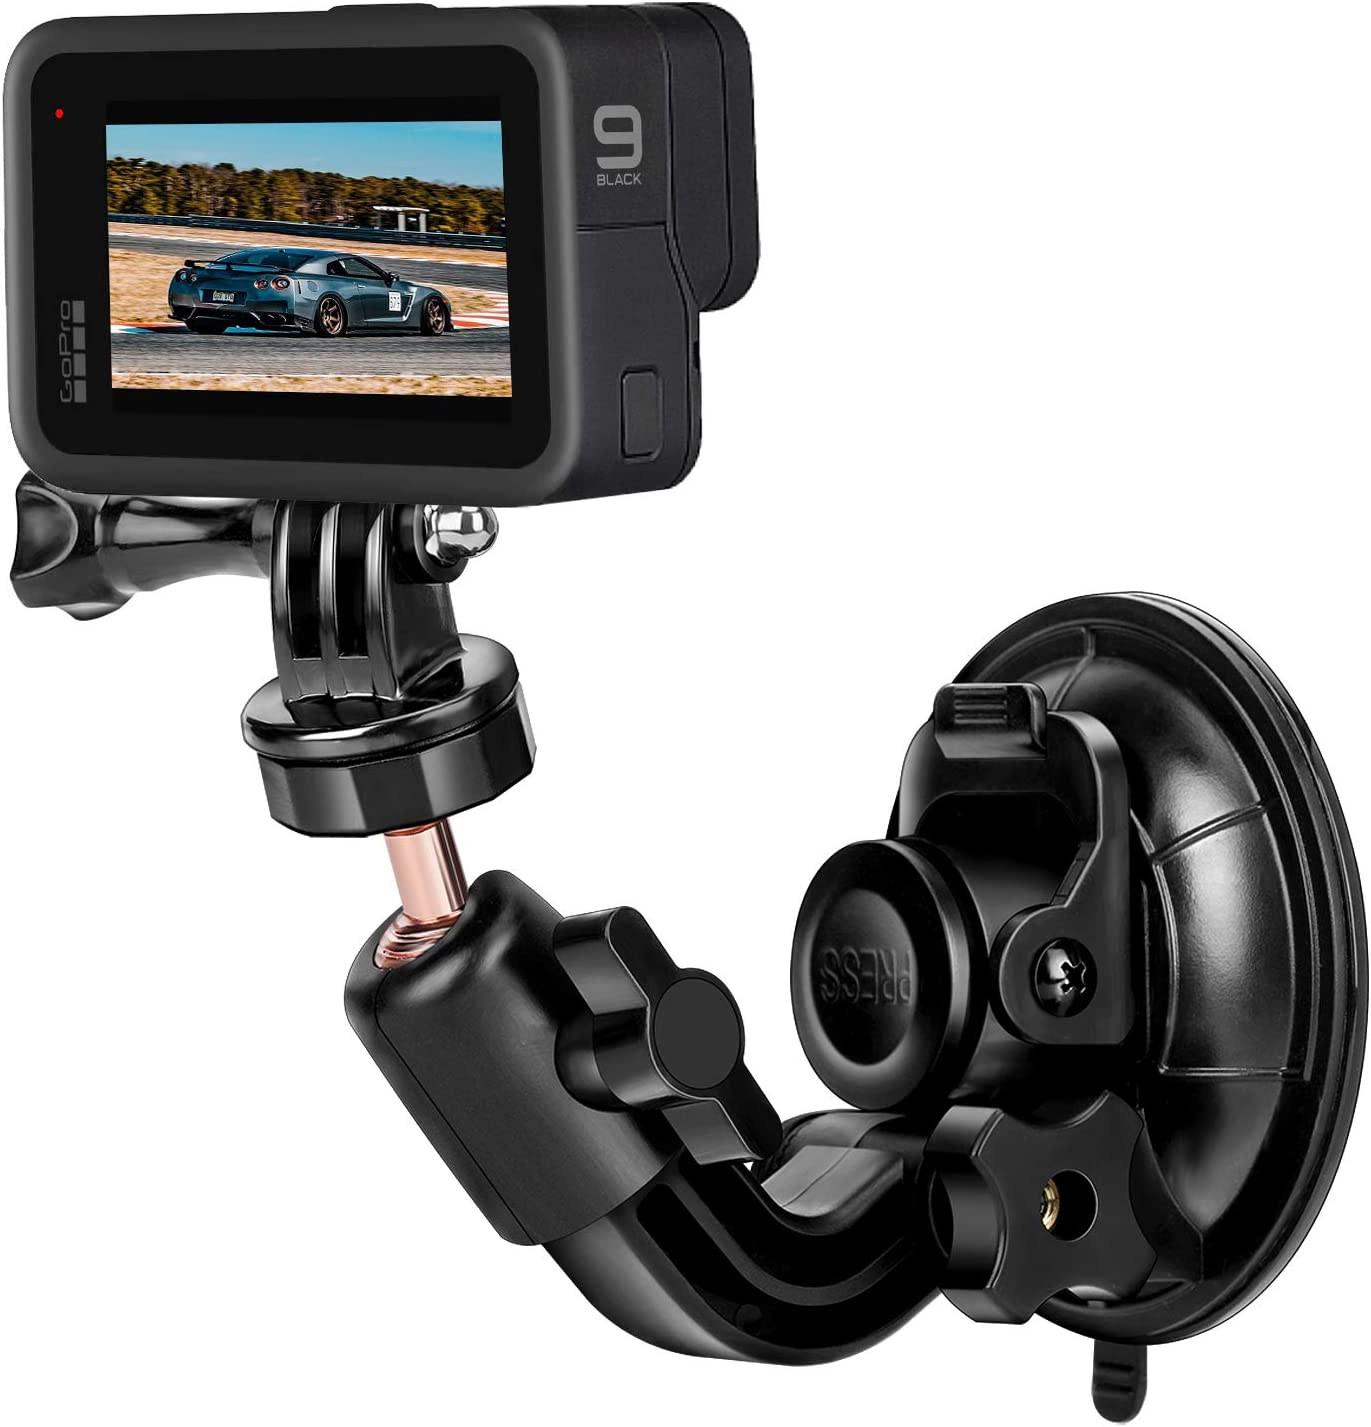 Mipremium Car Suction Cup Mount For Gopro Hero 9 8 7 6 5 4 3 3 2 Session Black Silver Xiaoyi 4k Sjcam Yi Sports Action Camera Dash Cam Holder Perfect For Boats Vehicle Windshield Window